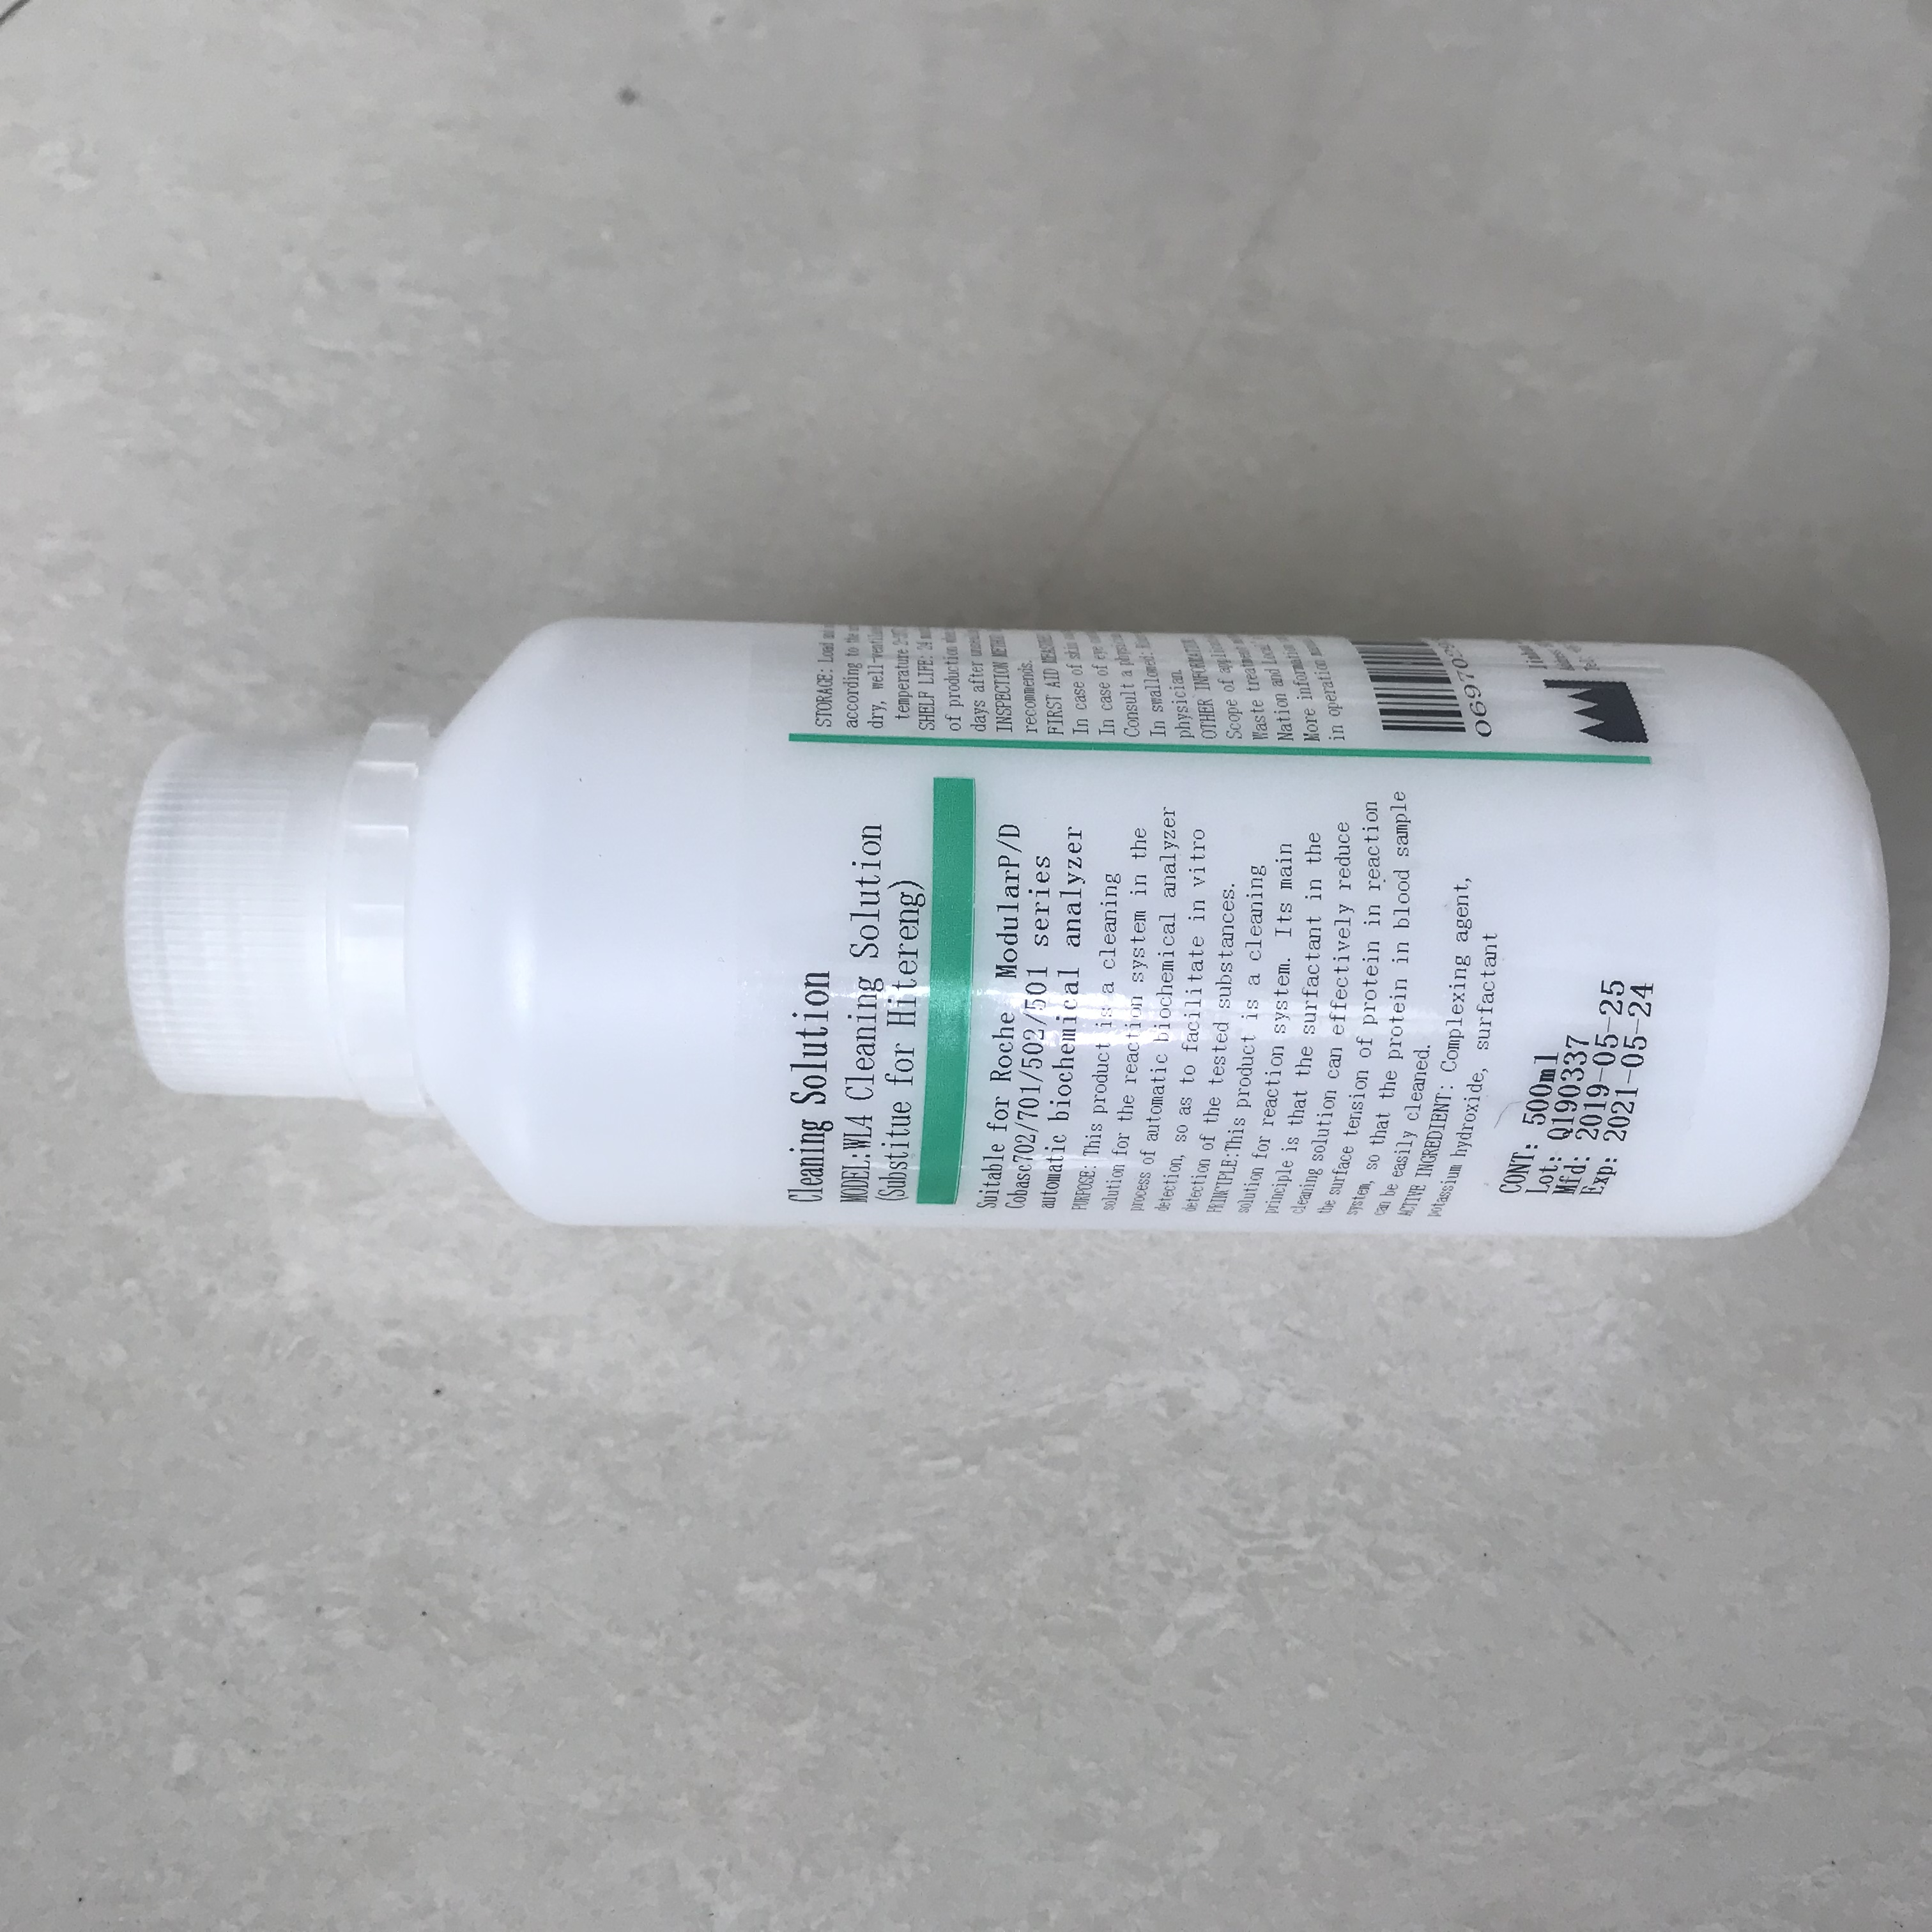 500ml Hitergent WL4 Roche Cobas c311 <strong>c111</strong> c502 c501 c702 c701 biochemistry cleaner solution